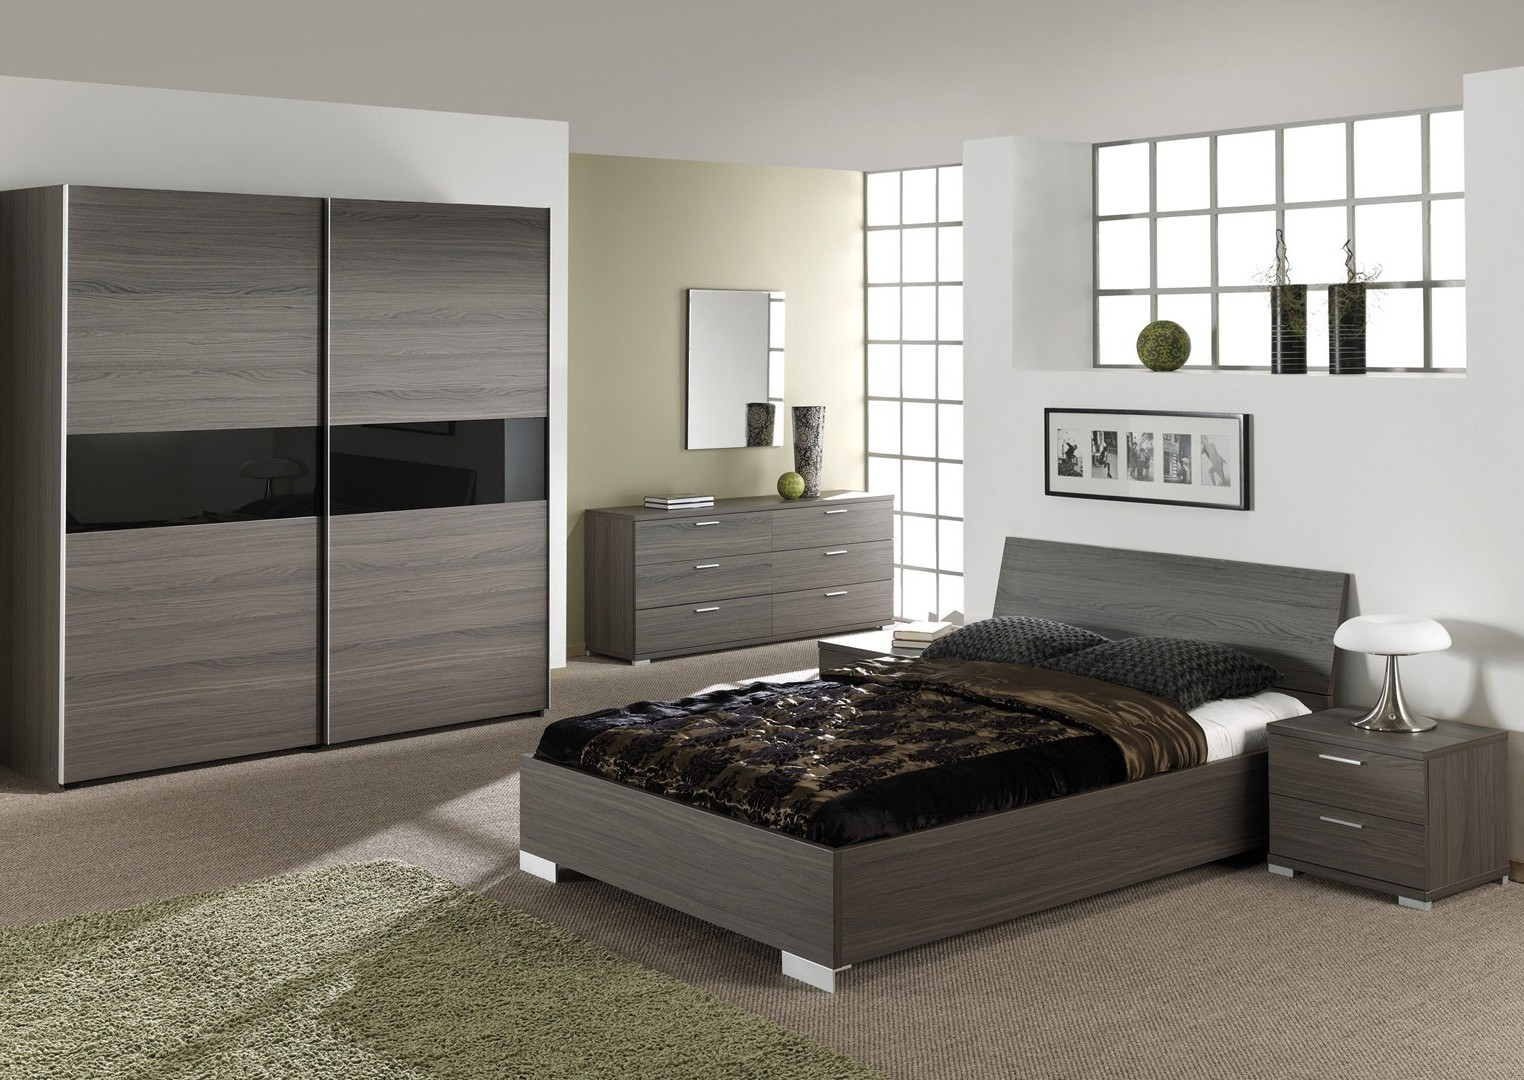 Chambre a coucher complete but affordable armoire with for Chambre adulte complete destockage